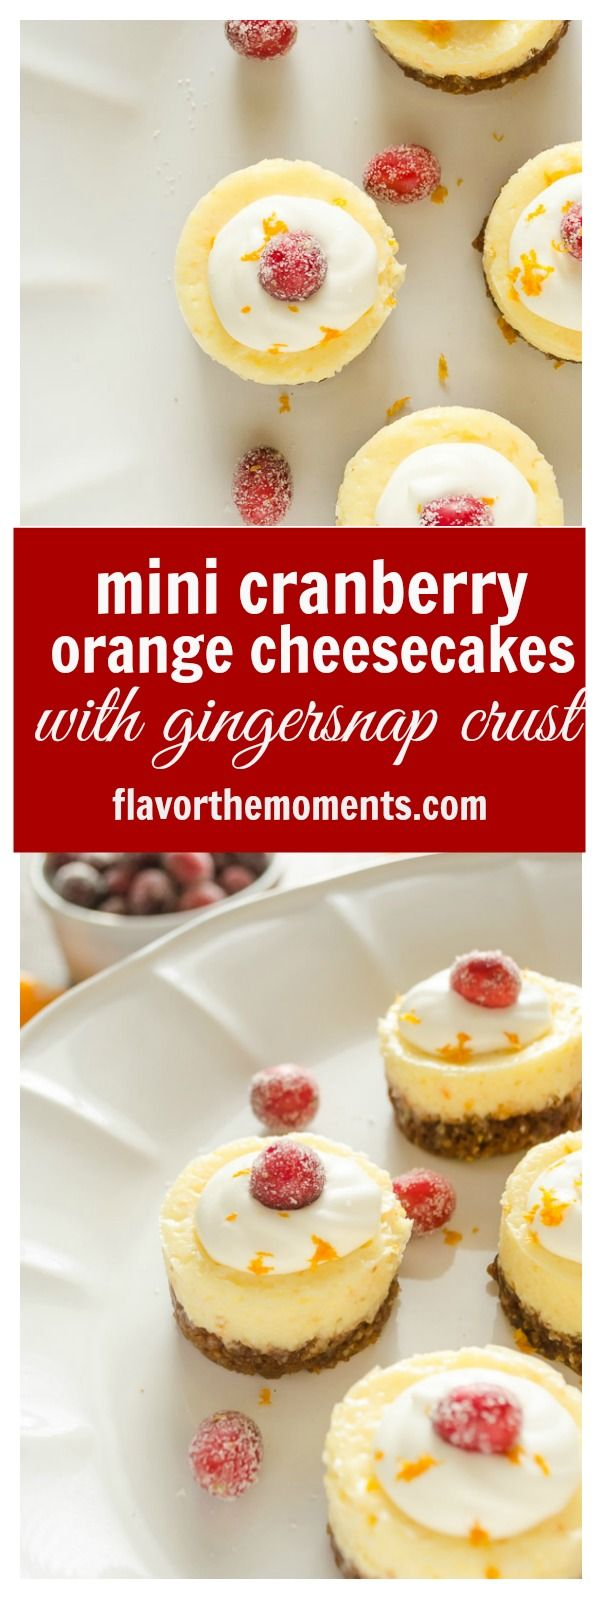 Mini Cranberry Orange Cheesecakes are creamy bite-sized cheesecakes bursting with holiday flavor! {GF} @FlavortheMoment